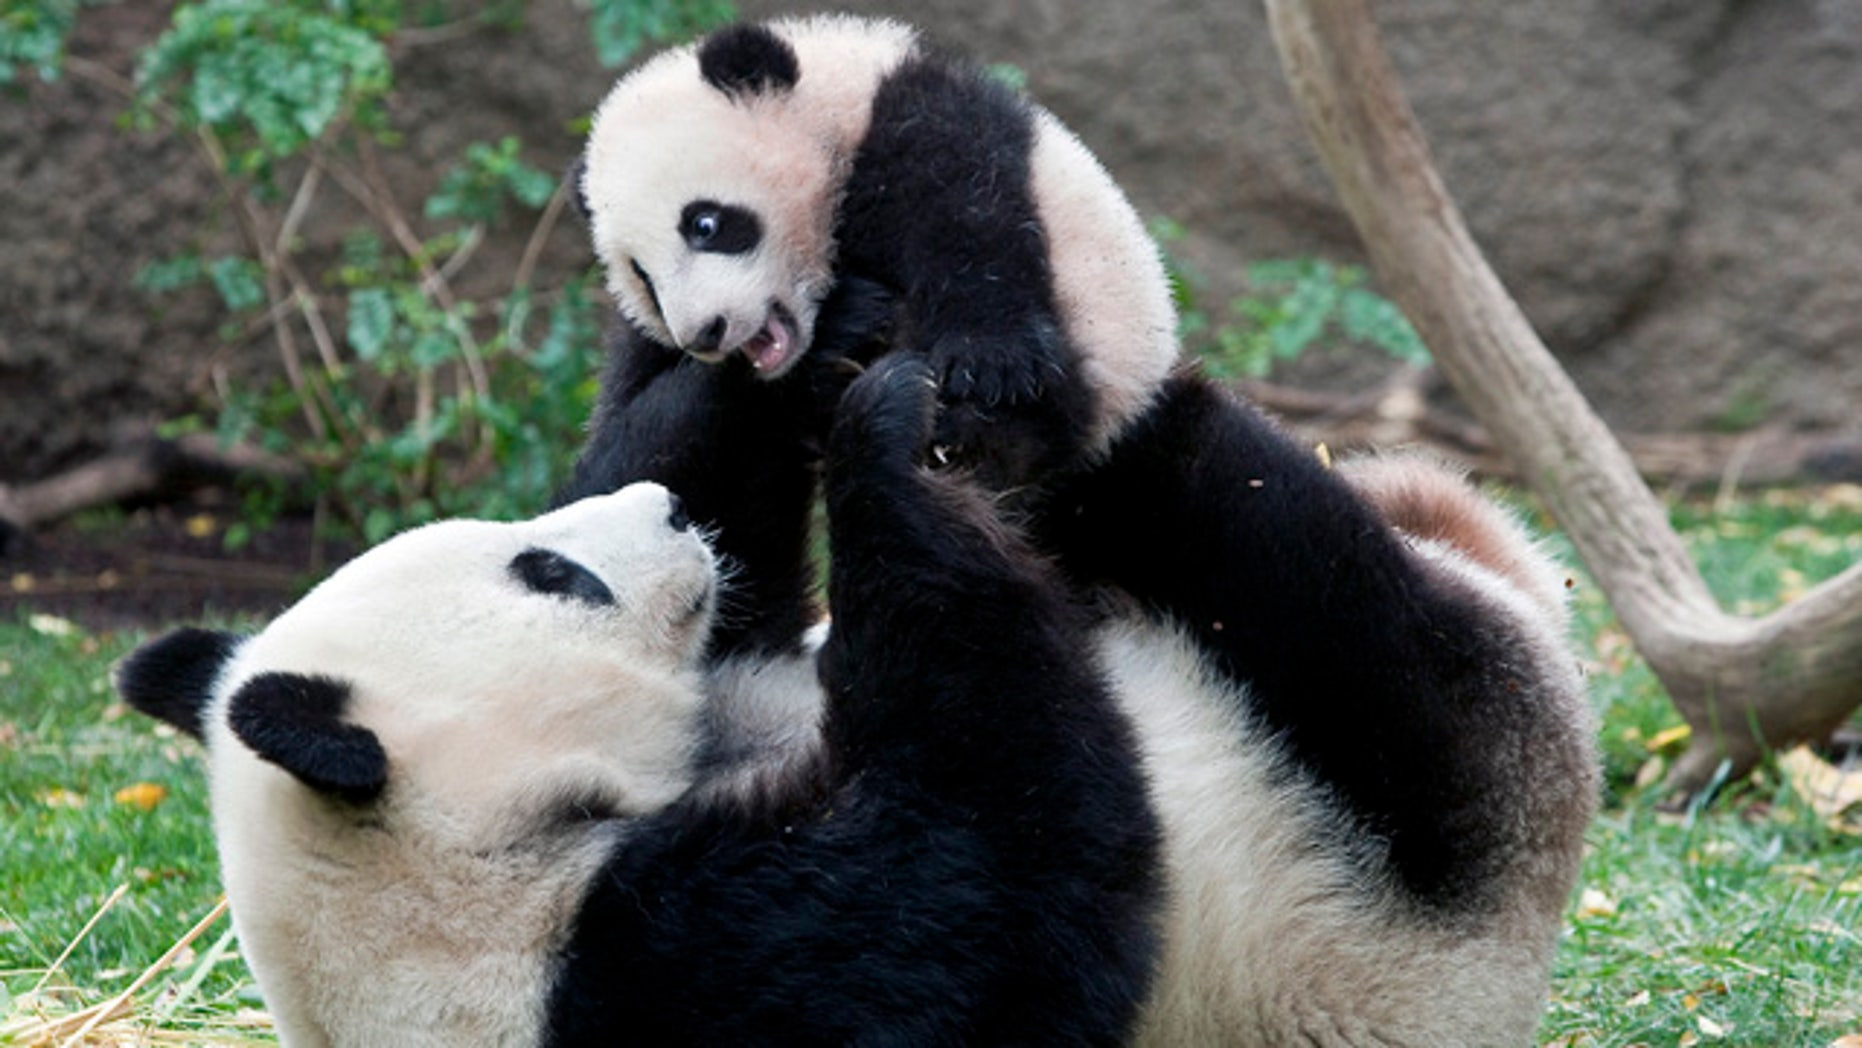 Giant Panda mom Bai Yun plays with her four-and-half-month old baby boy, Yun Zi, at their enclosure at the San Diego Zoo. Researchers say a decline in panda births is attributable to exhaustion.